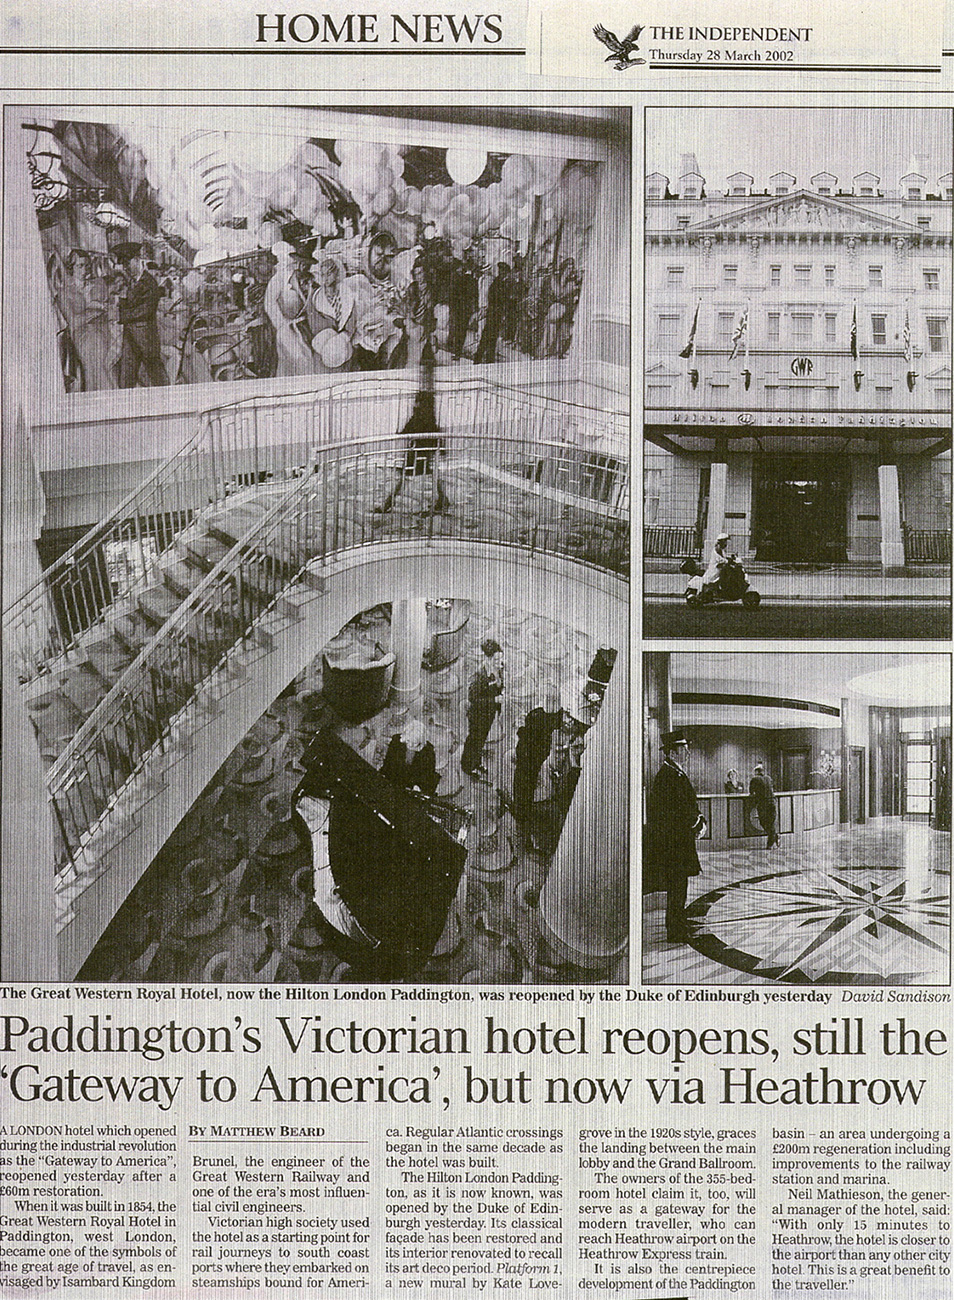 Independent newspaper article on the opening of the Paddington Hilton.